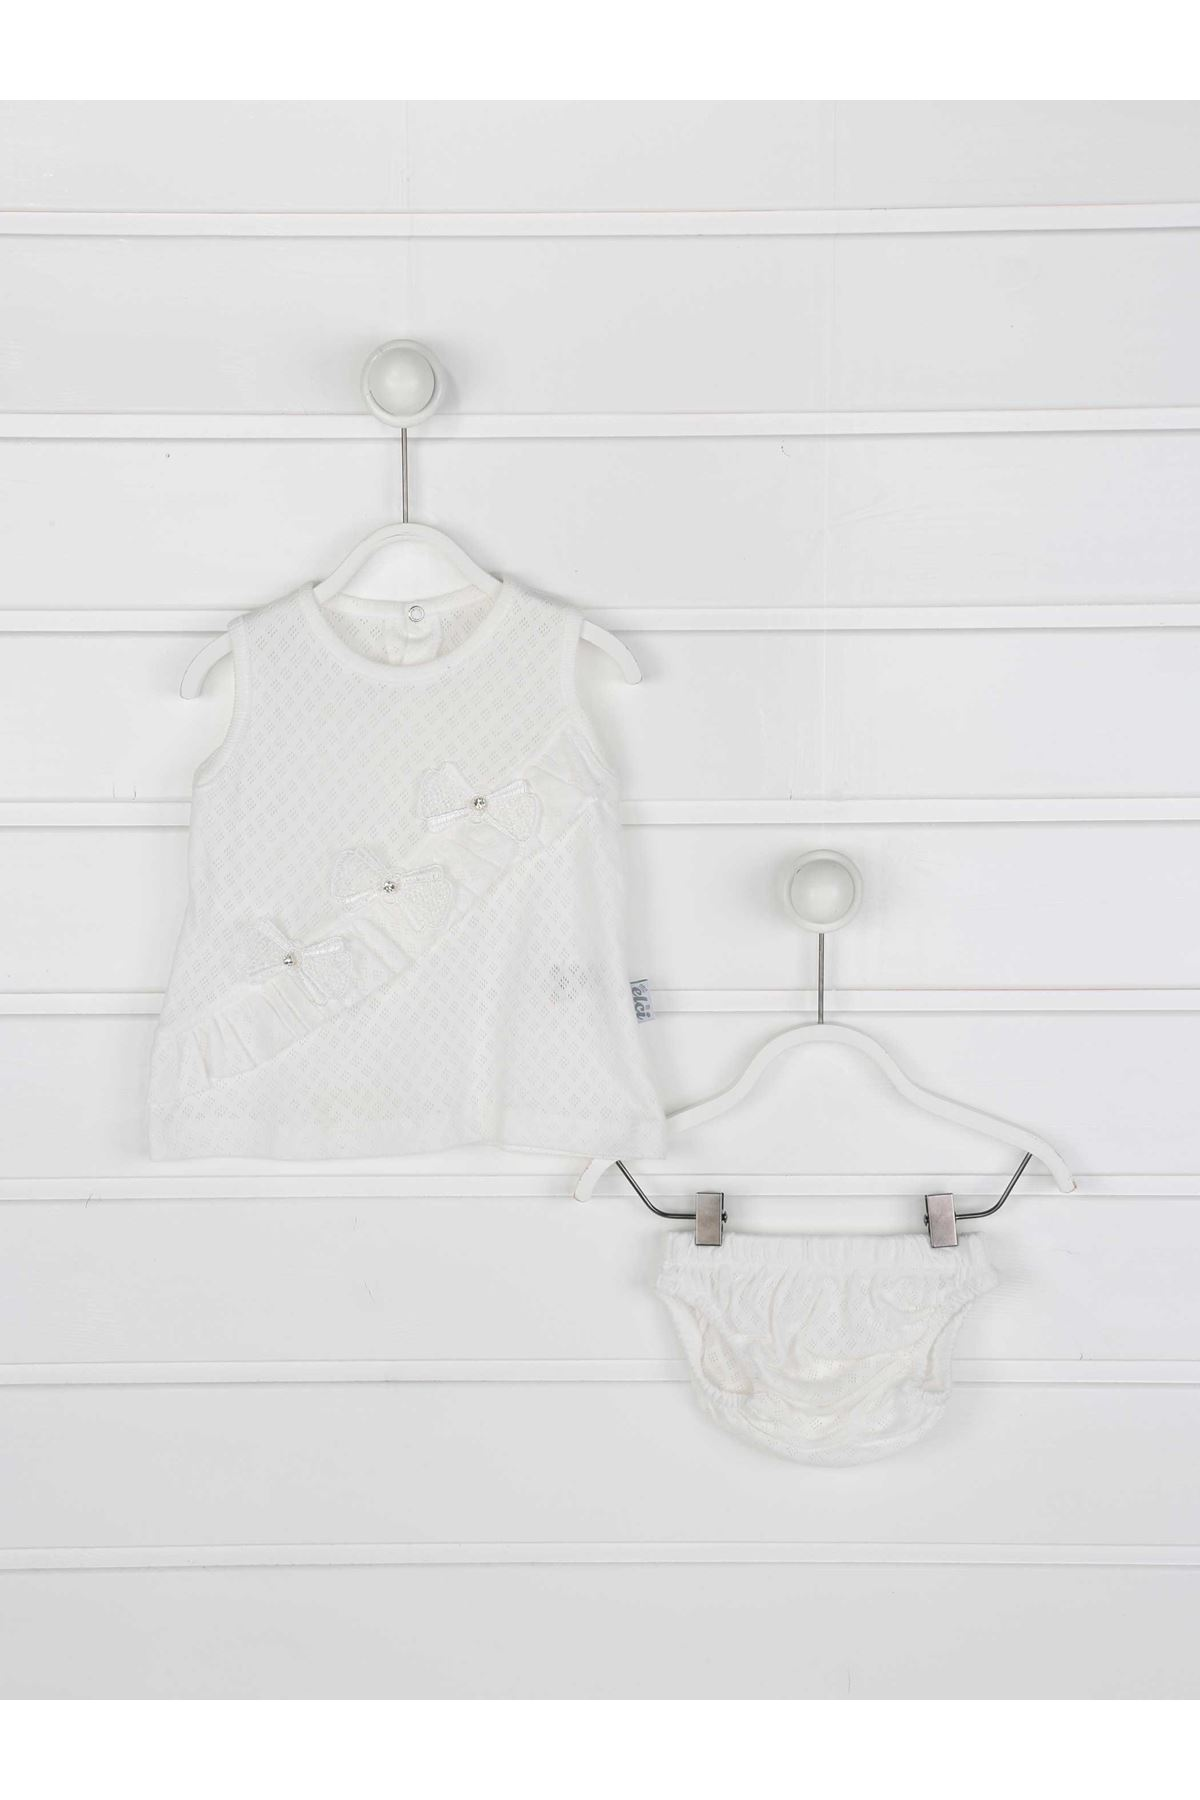 White Baby Girl Daily 2 Piece Suit Set Cotton Daily Seasonal Casual Wear Girls Babies Suit Outfit Models Dress and panties